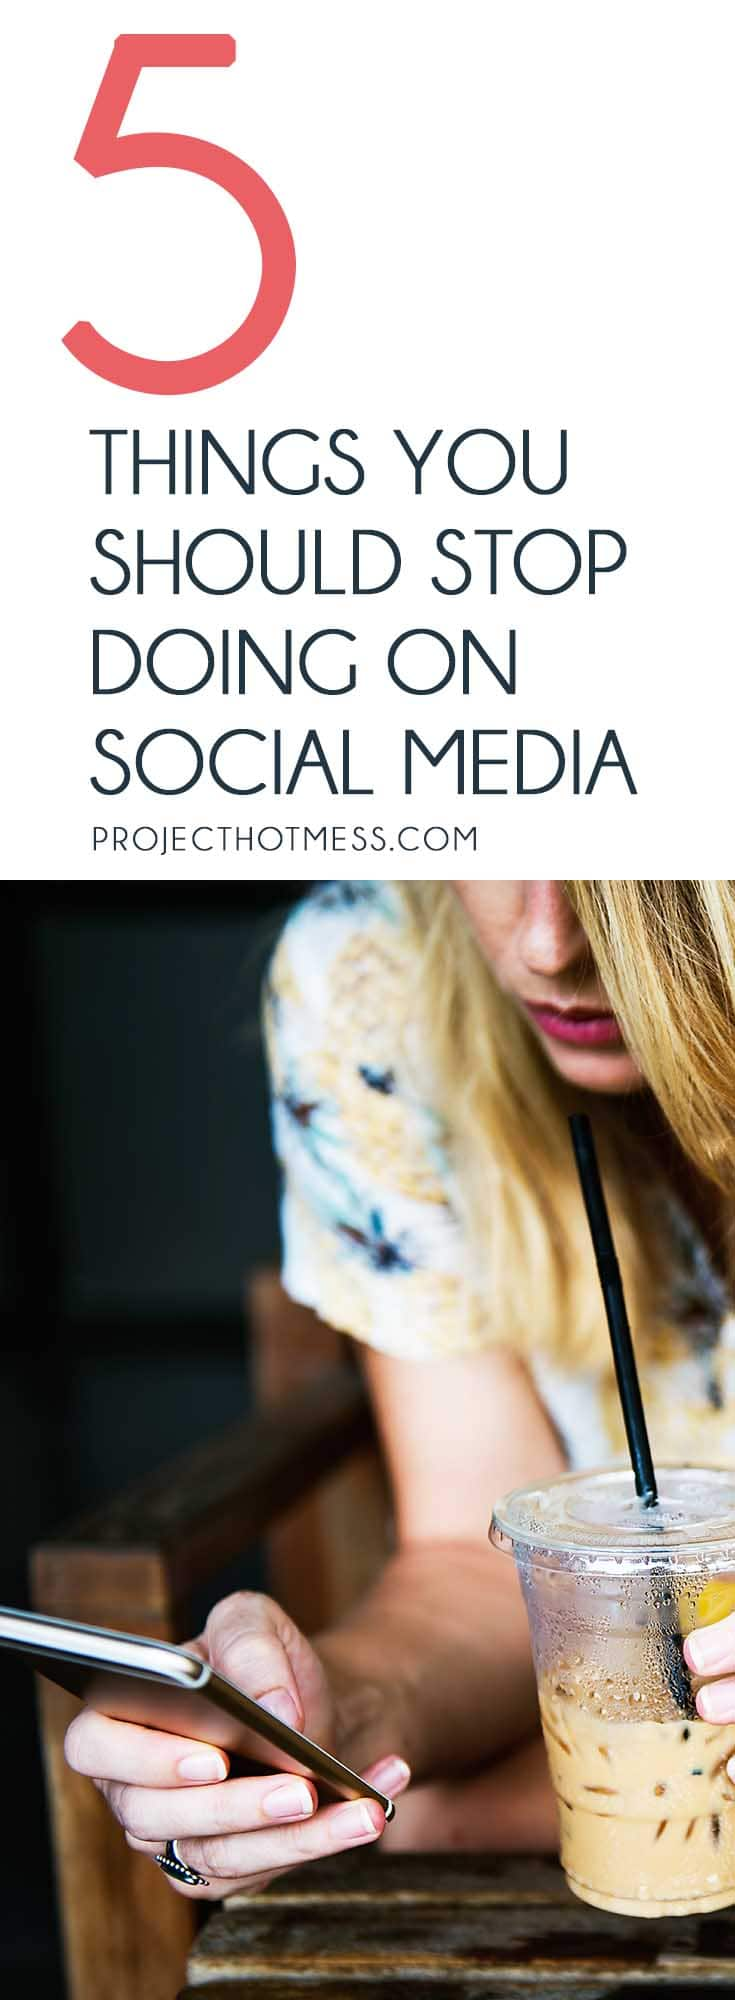 Social media is an amazing place where anything seems possible, but there are still things you should stop doing on social media that could put you at risk when it comes to safety and the people around you. Social Media | Facebook | Instagram | Sharing on Social Media | Social Media Security | Confidence | Life Lessons | Cyber Safety | Cyber Bullying | Cyber Security